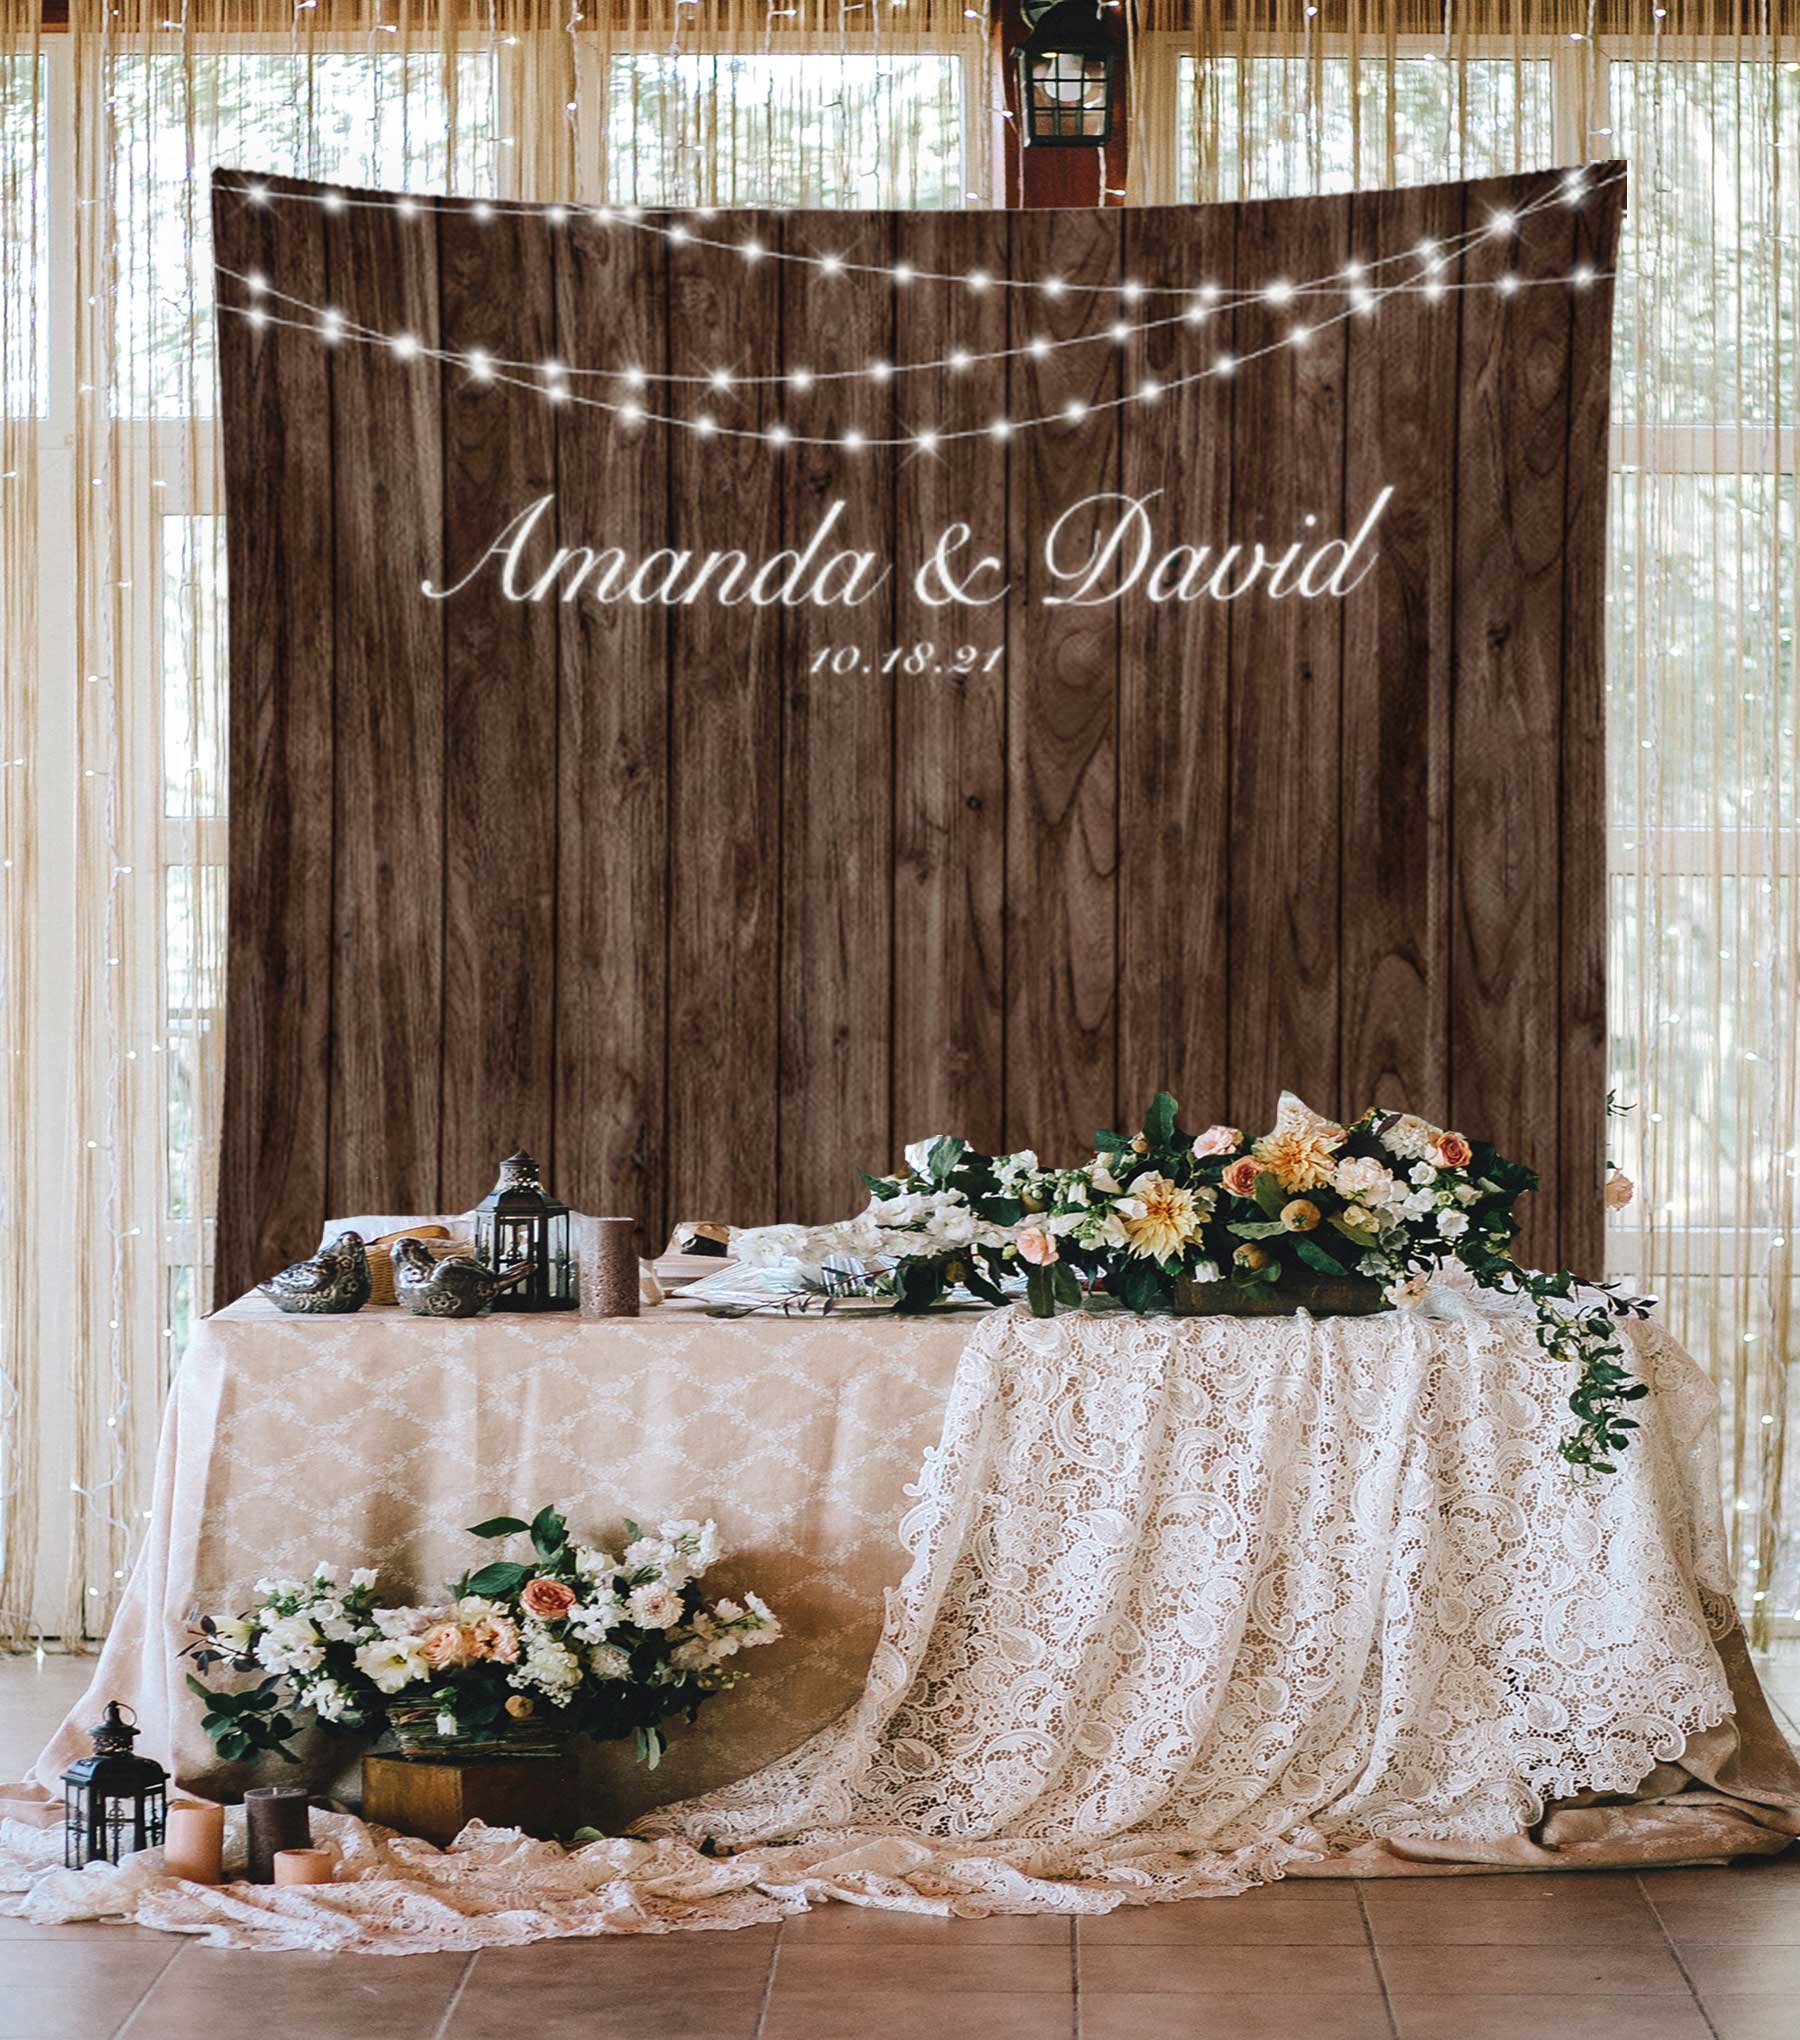 Rustic Wedding Backdrop with String Lights | Blushing Drops